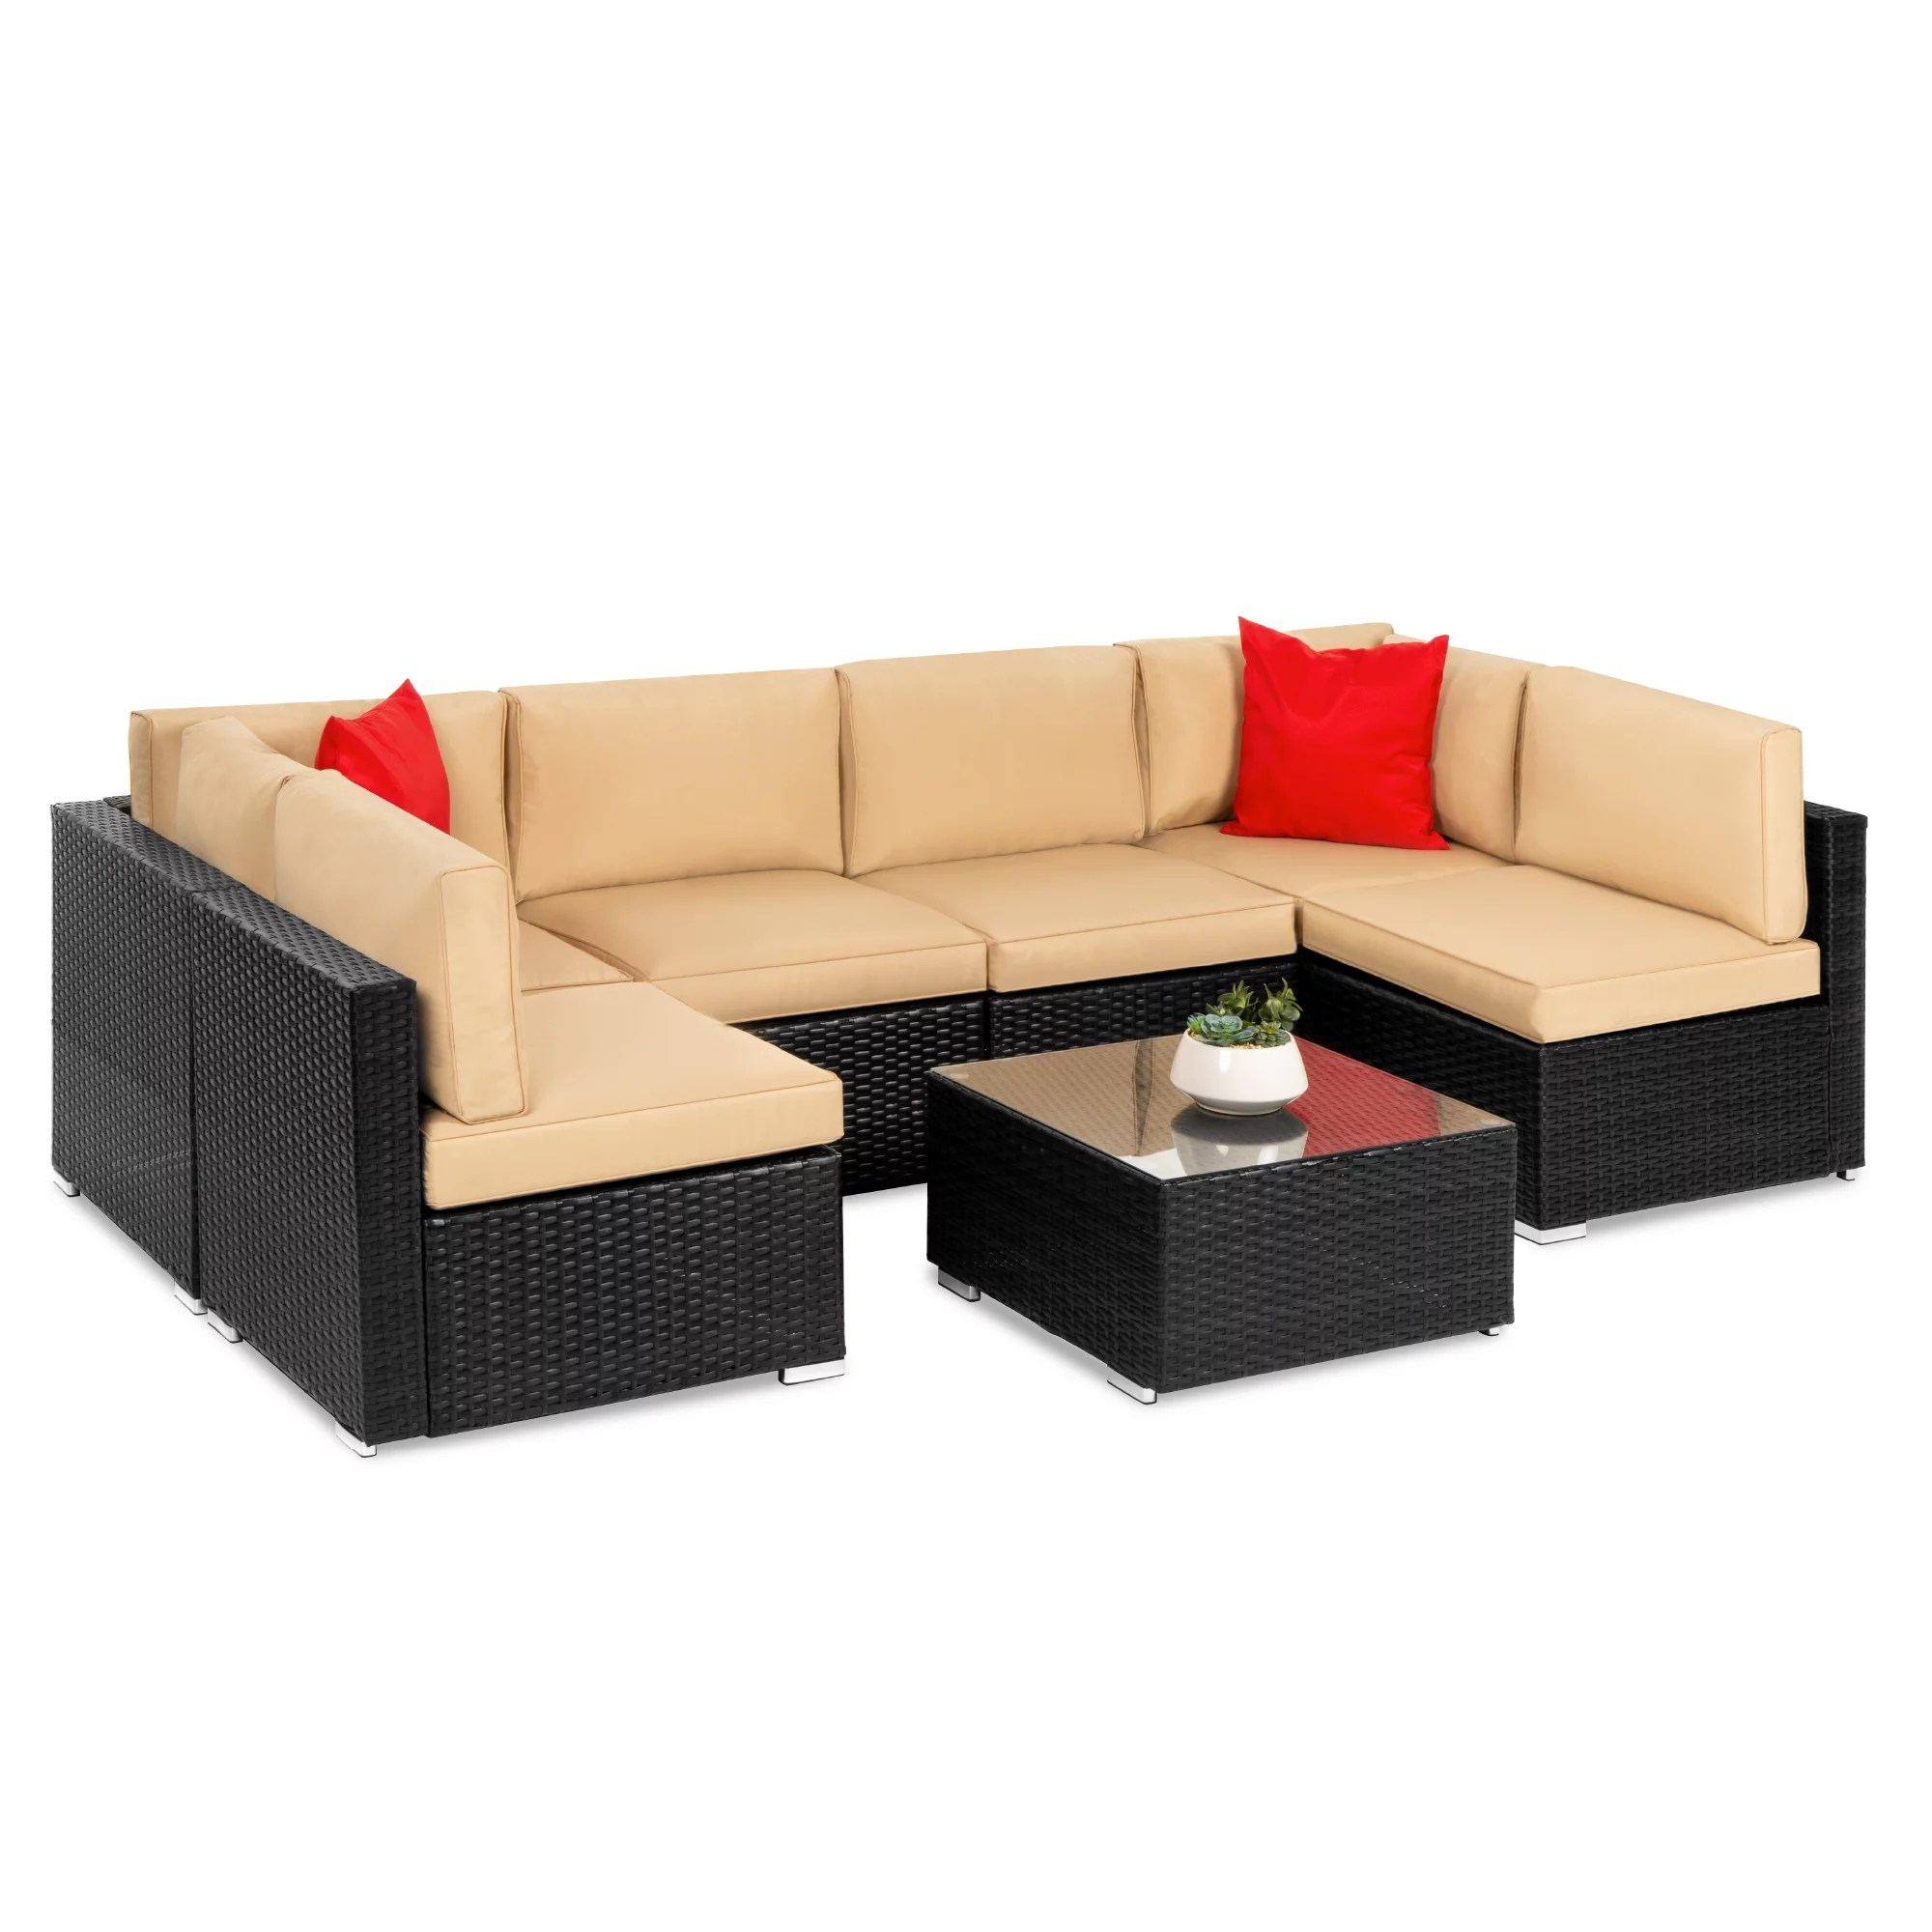 best choice products 7 piece modular outdoor patio furniture set wicker sectional sofas w cover seat clips a black